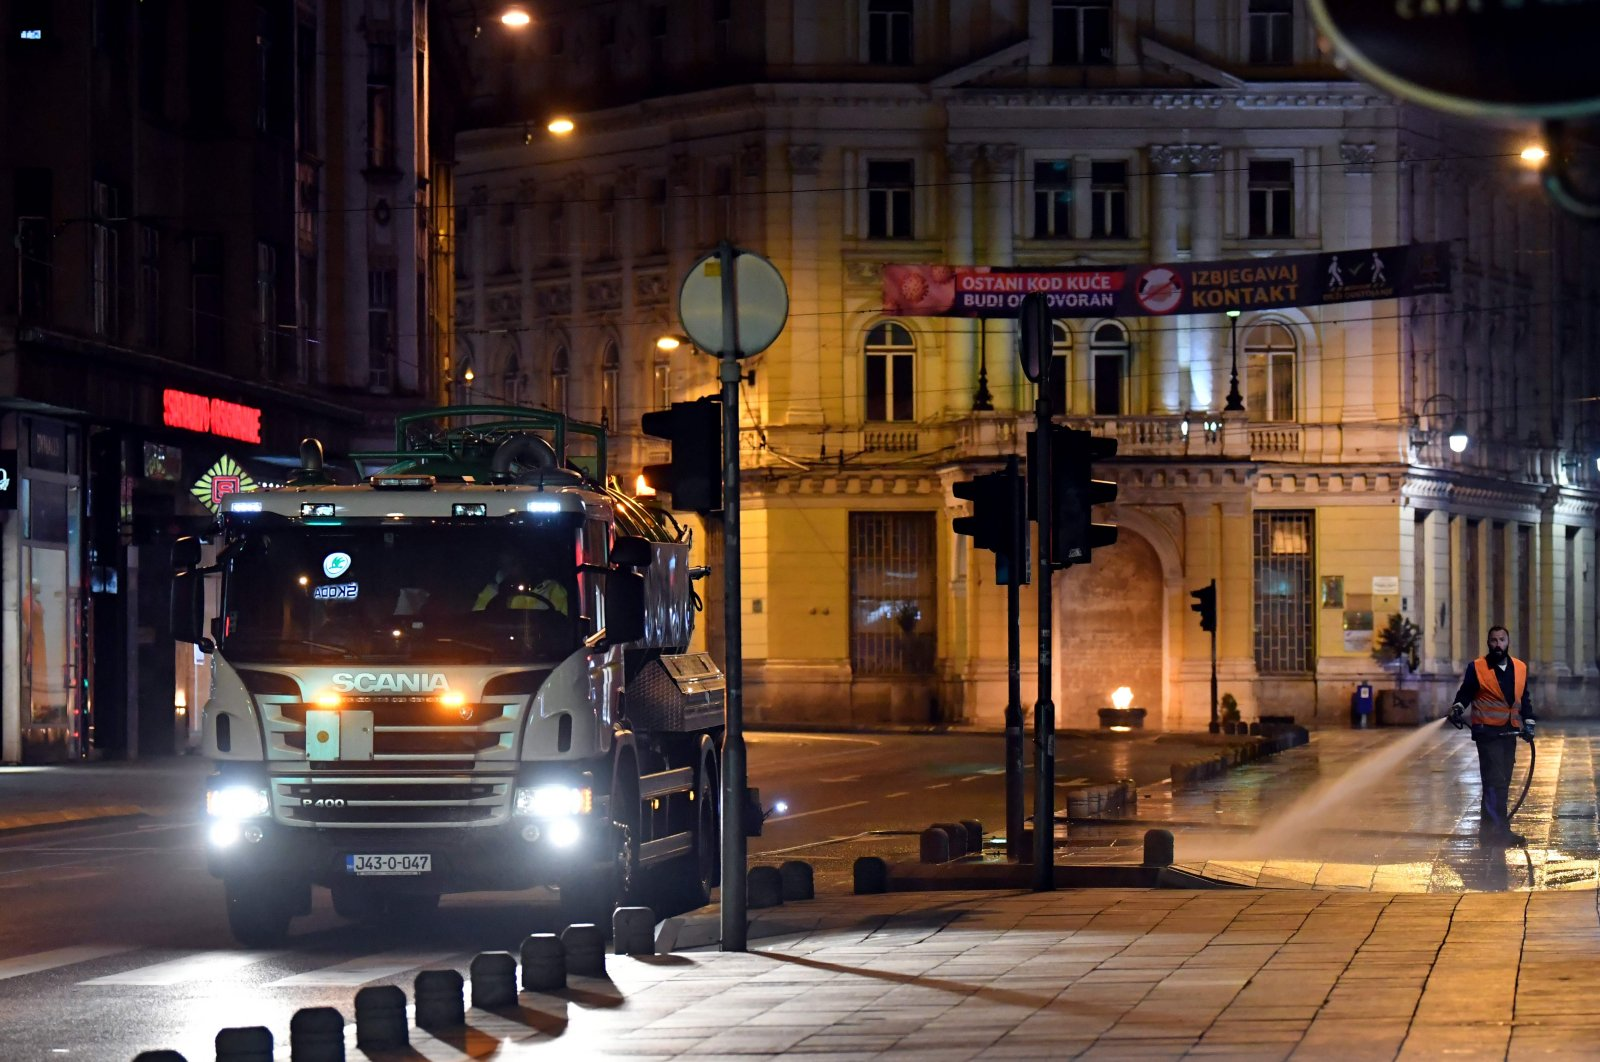 Bosnian sanitation workers use curfew hours to wash streets with water and sanitizing solution, in Sarajevo, late on April 4, 2020. (AFP Photo)